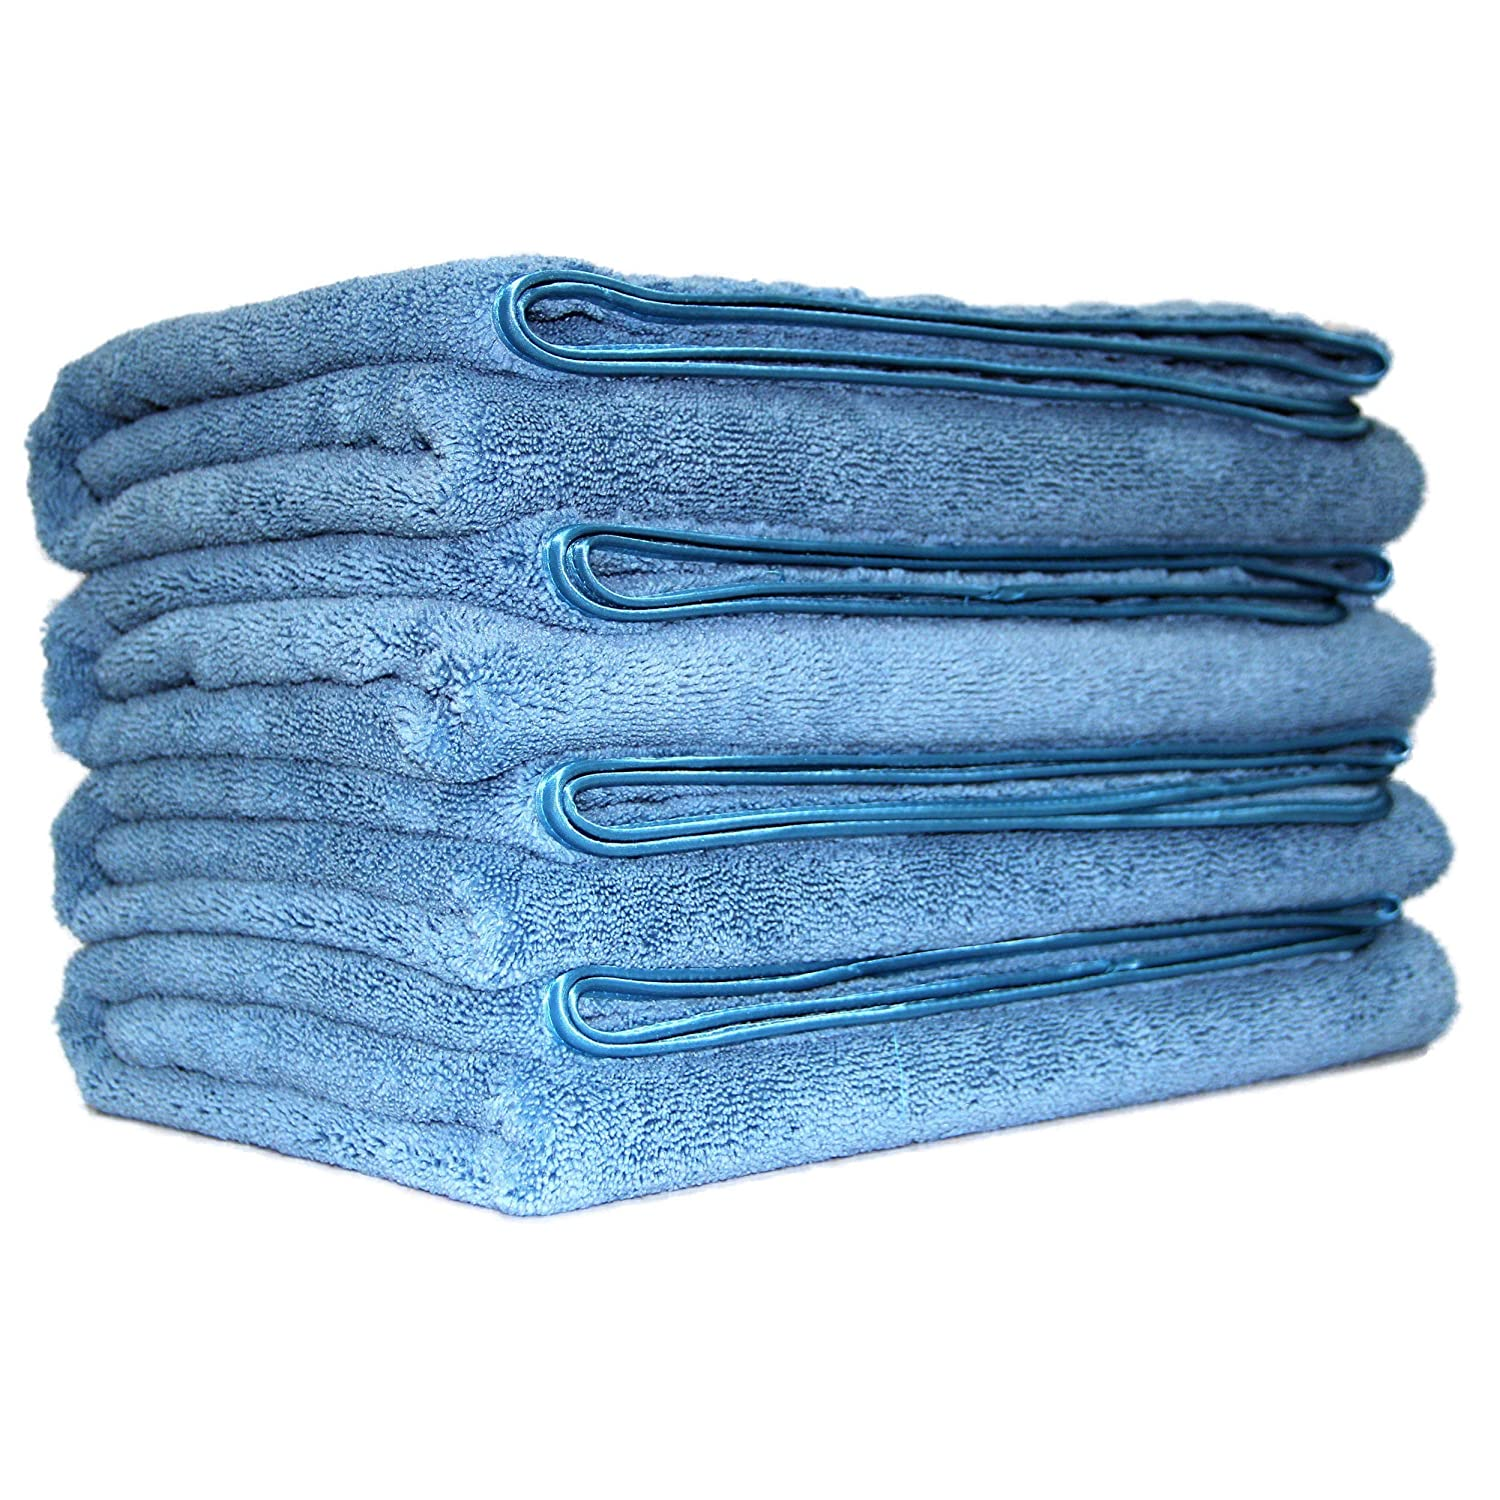 Polyte Home- Quick Dry Towels